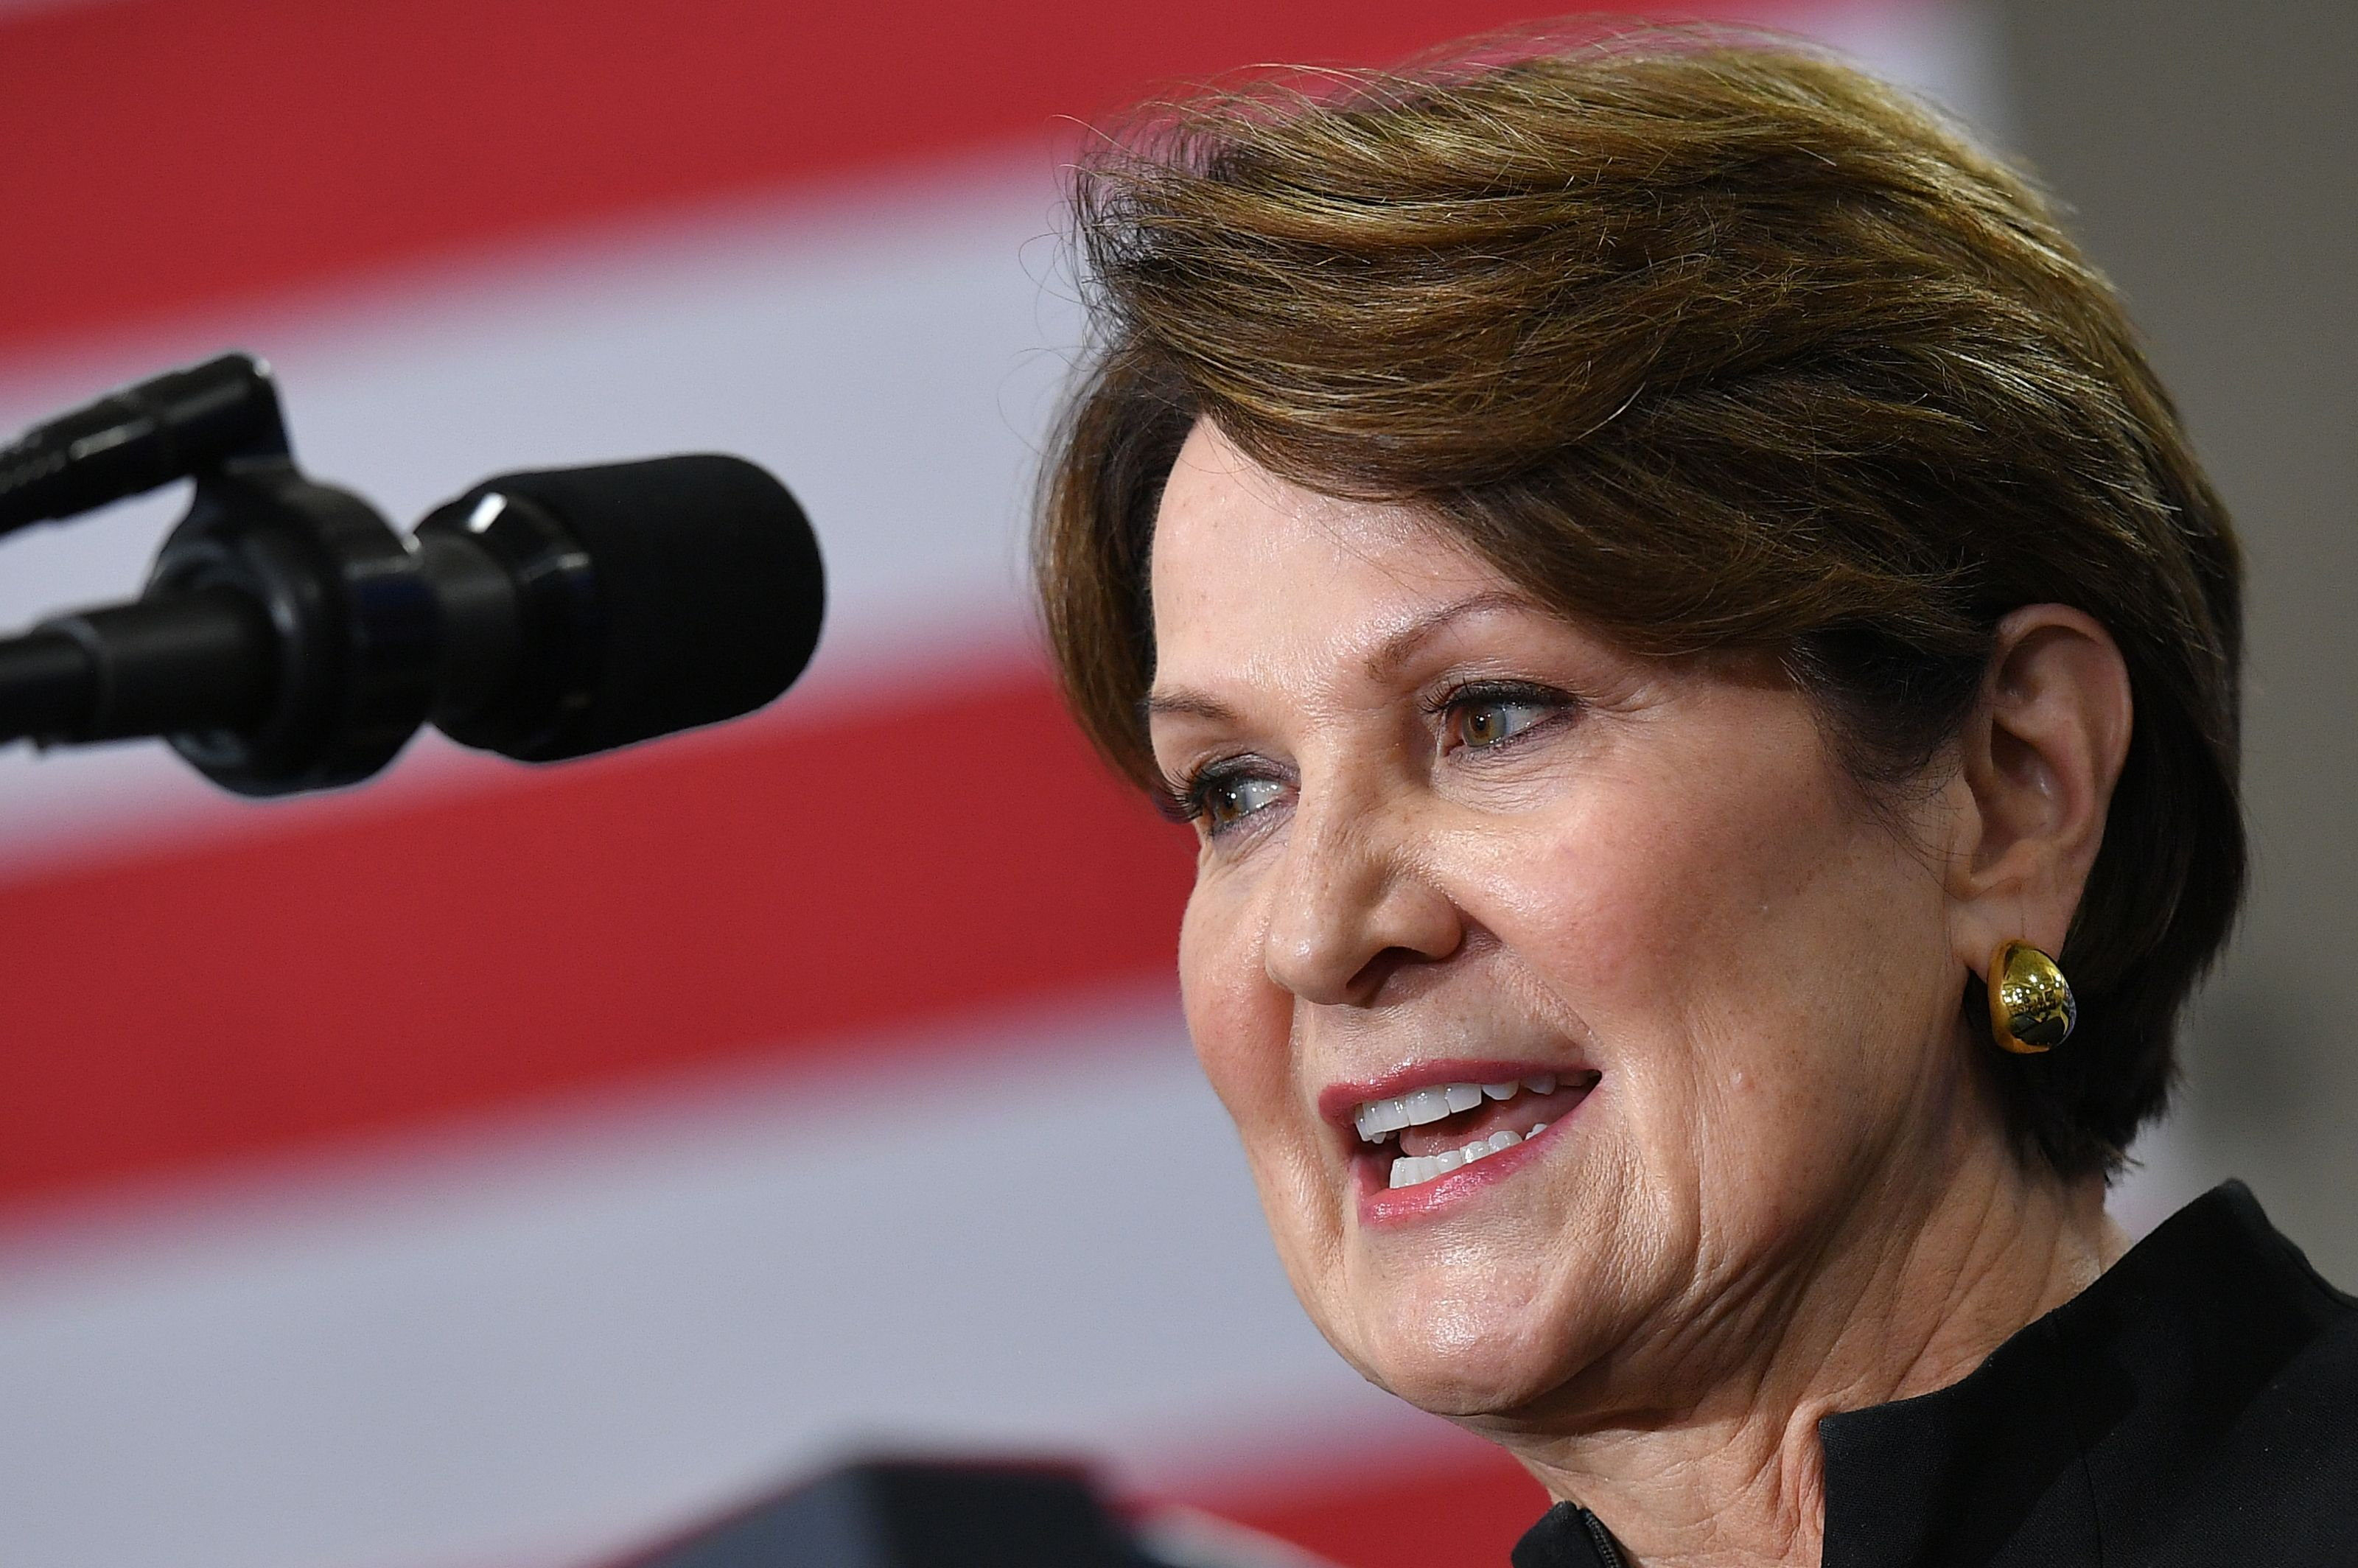 Lockheed Martin CEO Marillyn Hewson speaks during an event with US President Donald Trump on the United StatesMexicoCanada Agreement (USMCA) trade agreement at Derco Aerospace Inc. plant in Milwaukee, Wisconsin on July 12, 2019.